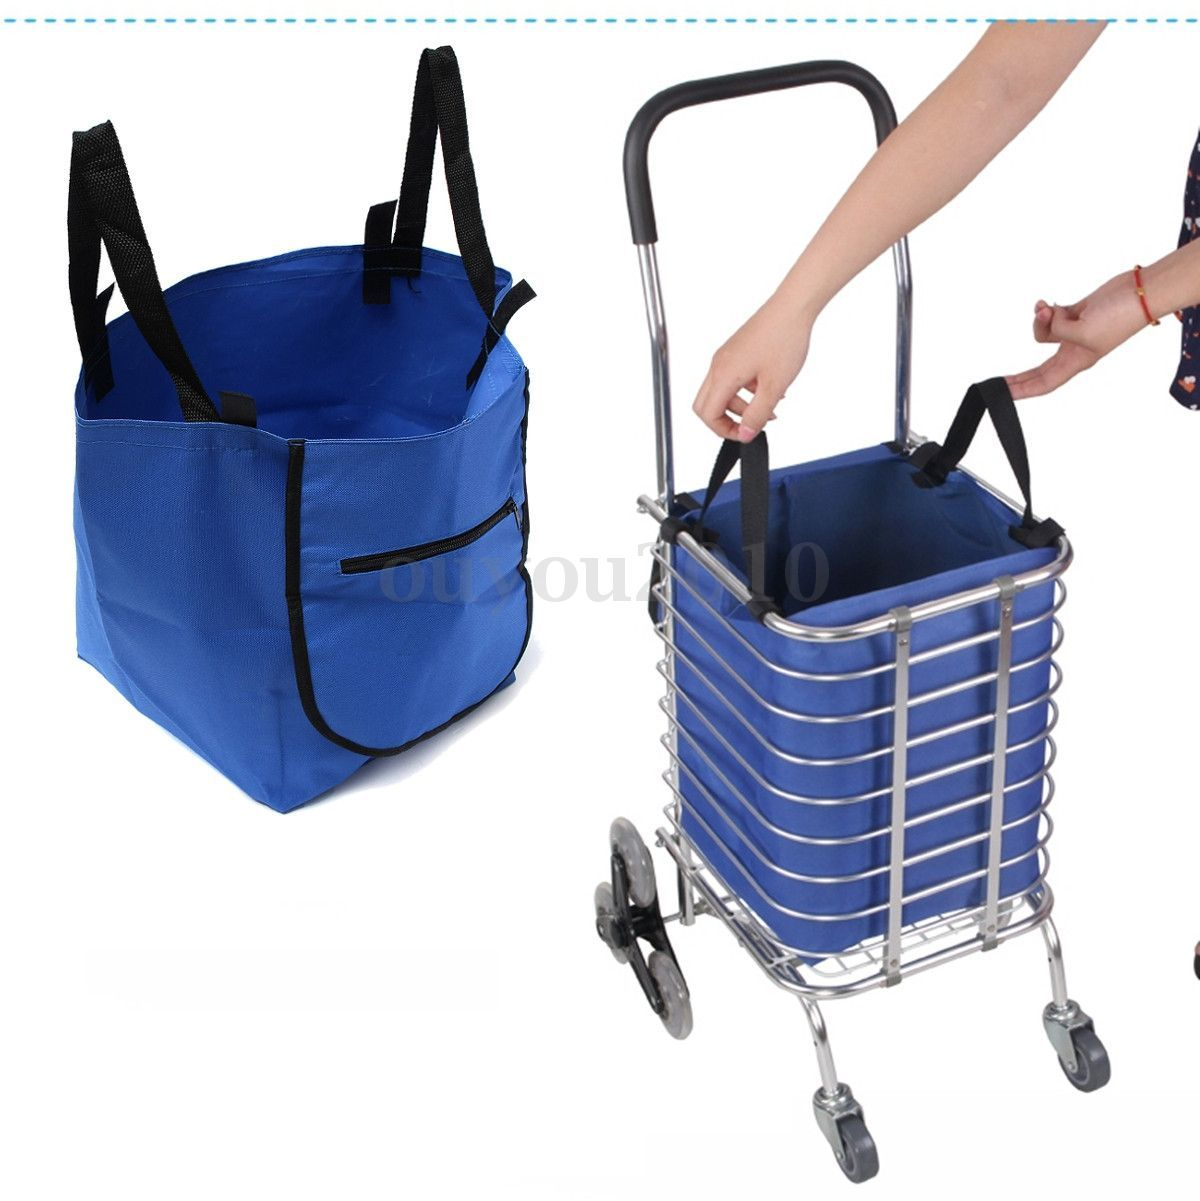 Folding Foldable Supermarket Shopping Trolley Bag Grocery Cart ...